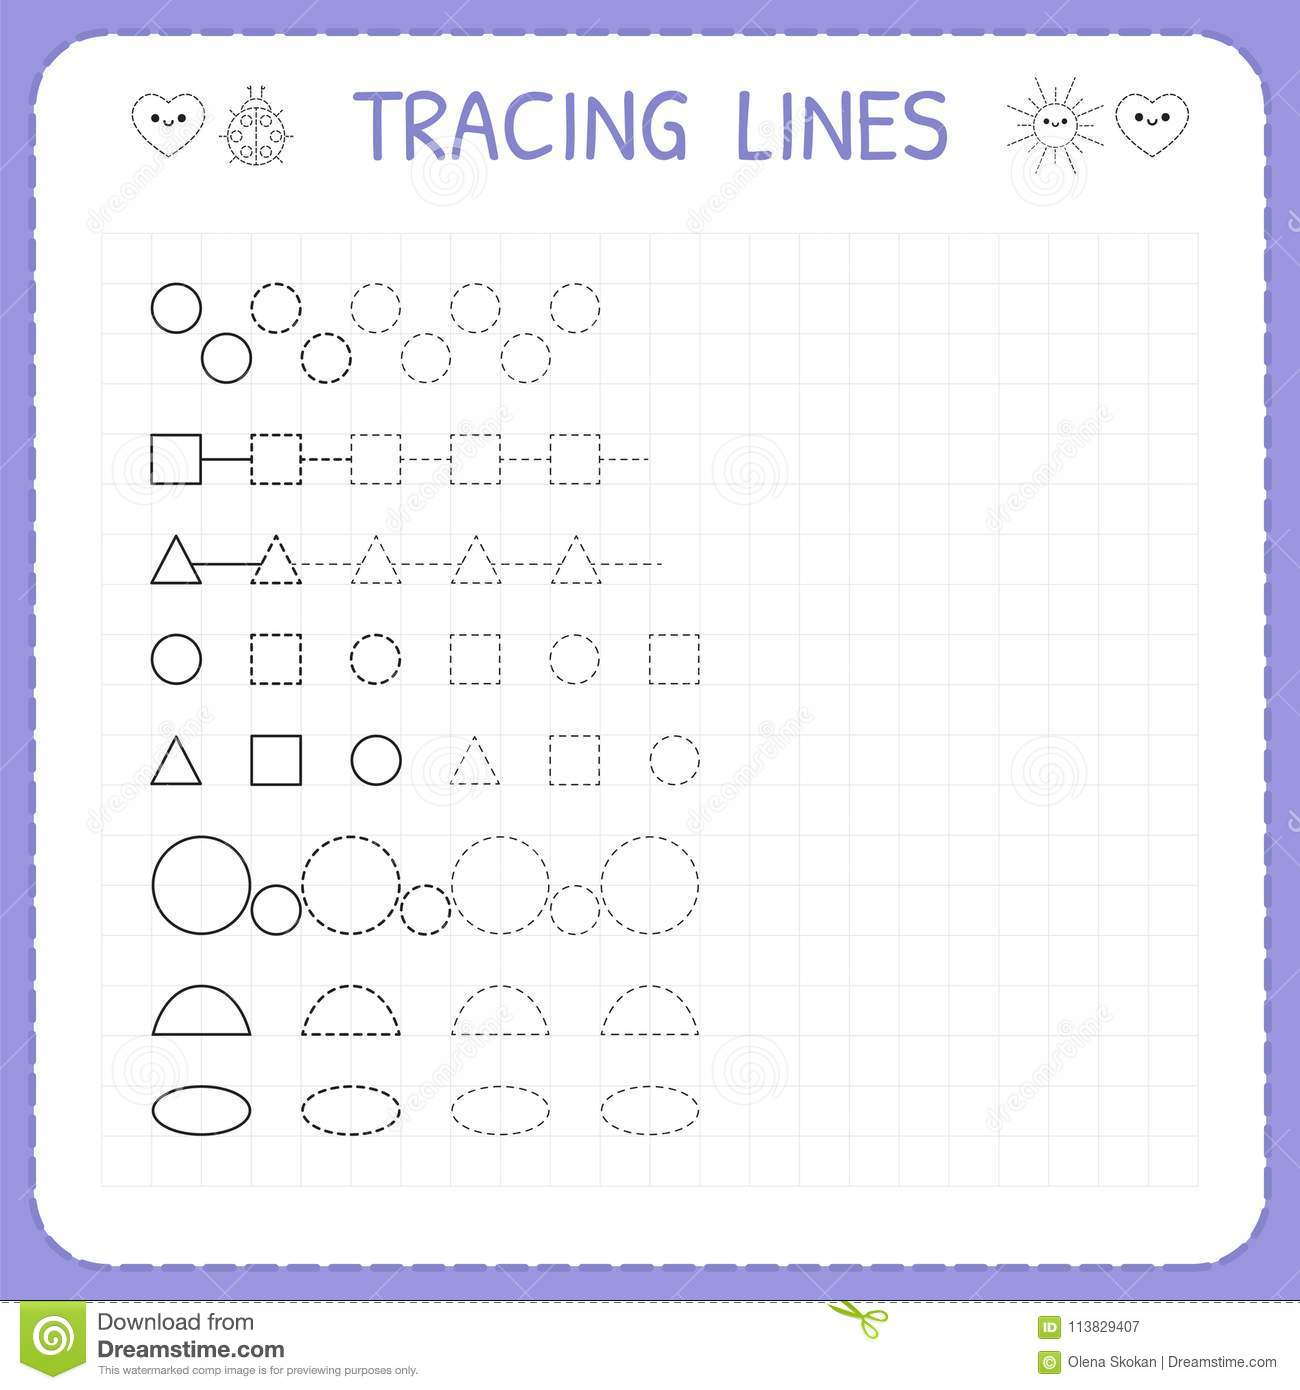 Tracing Lines Worksheet For Kids Working Pages For